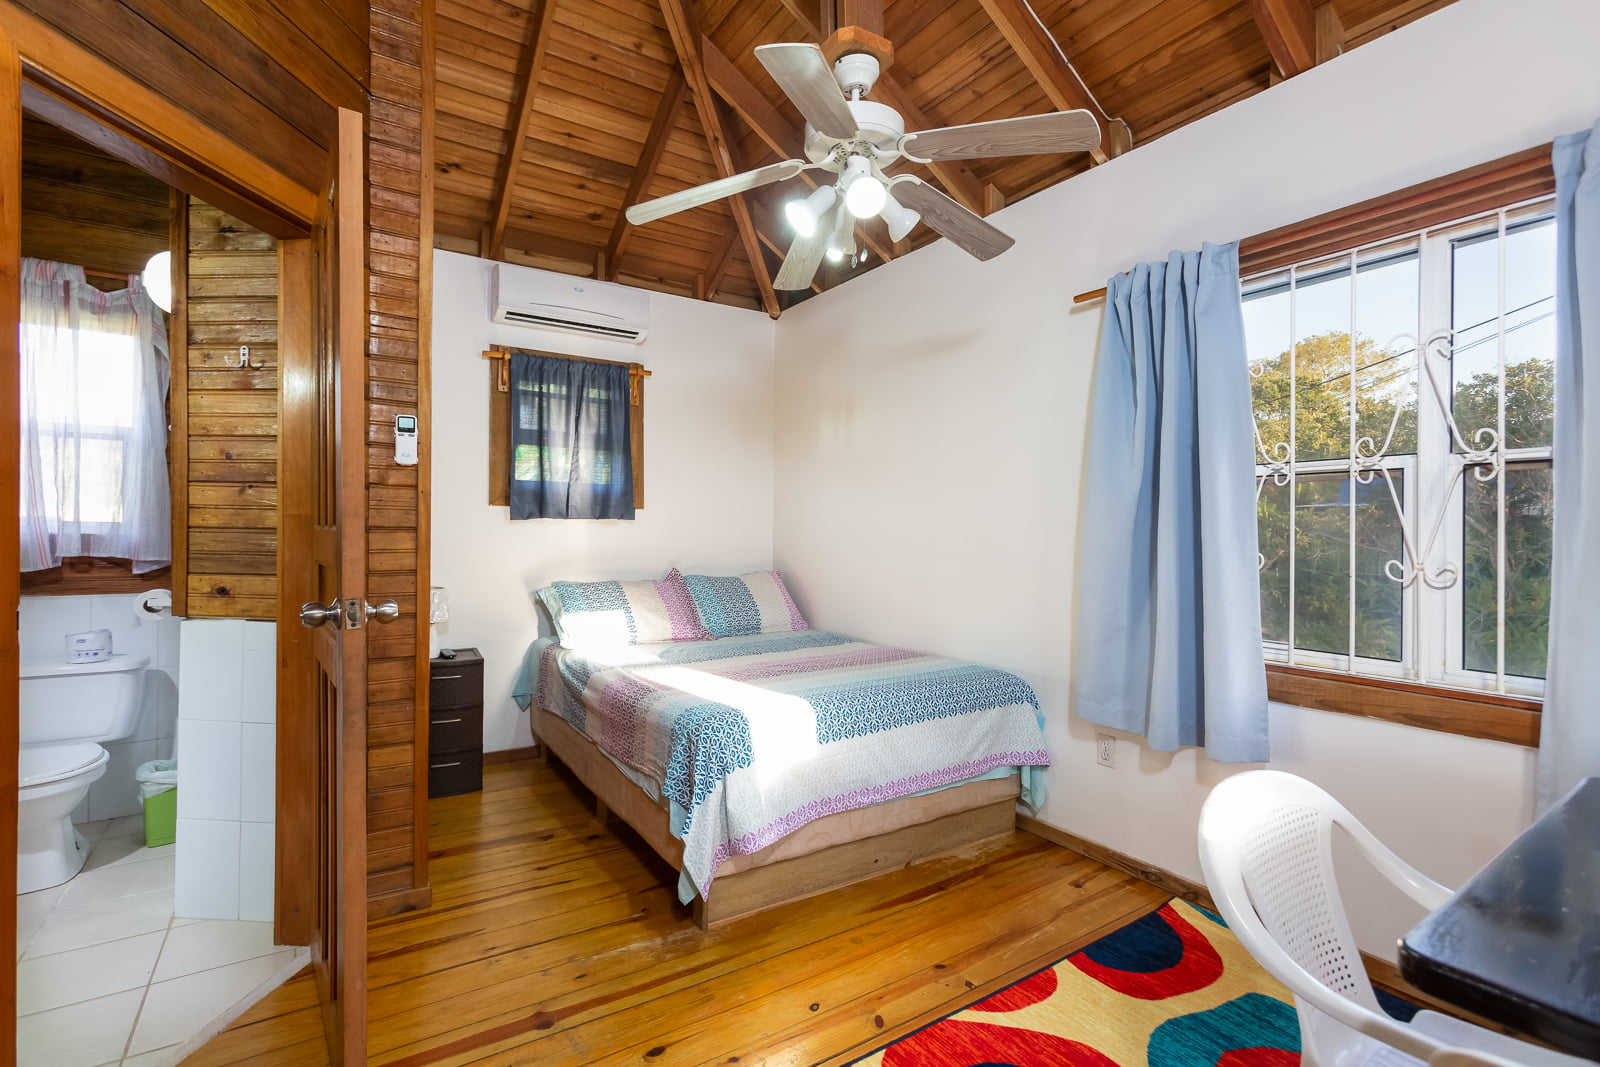 https://roatan-guavagrove.com/wp-content/uploads/2020/03/Queen-seaview-room-3.jpg